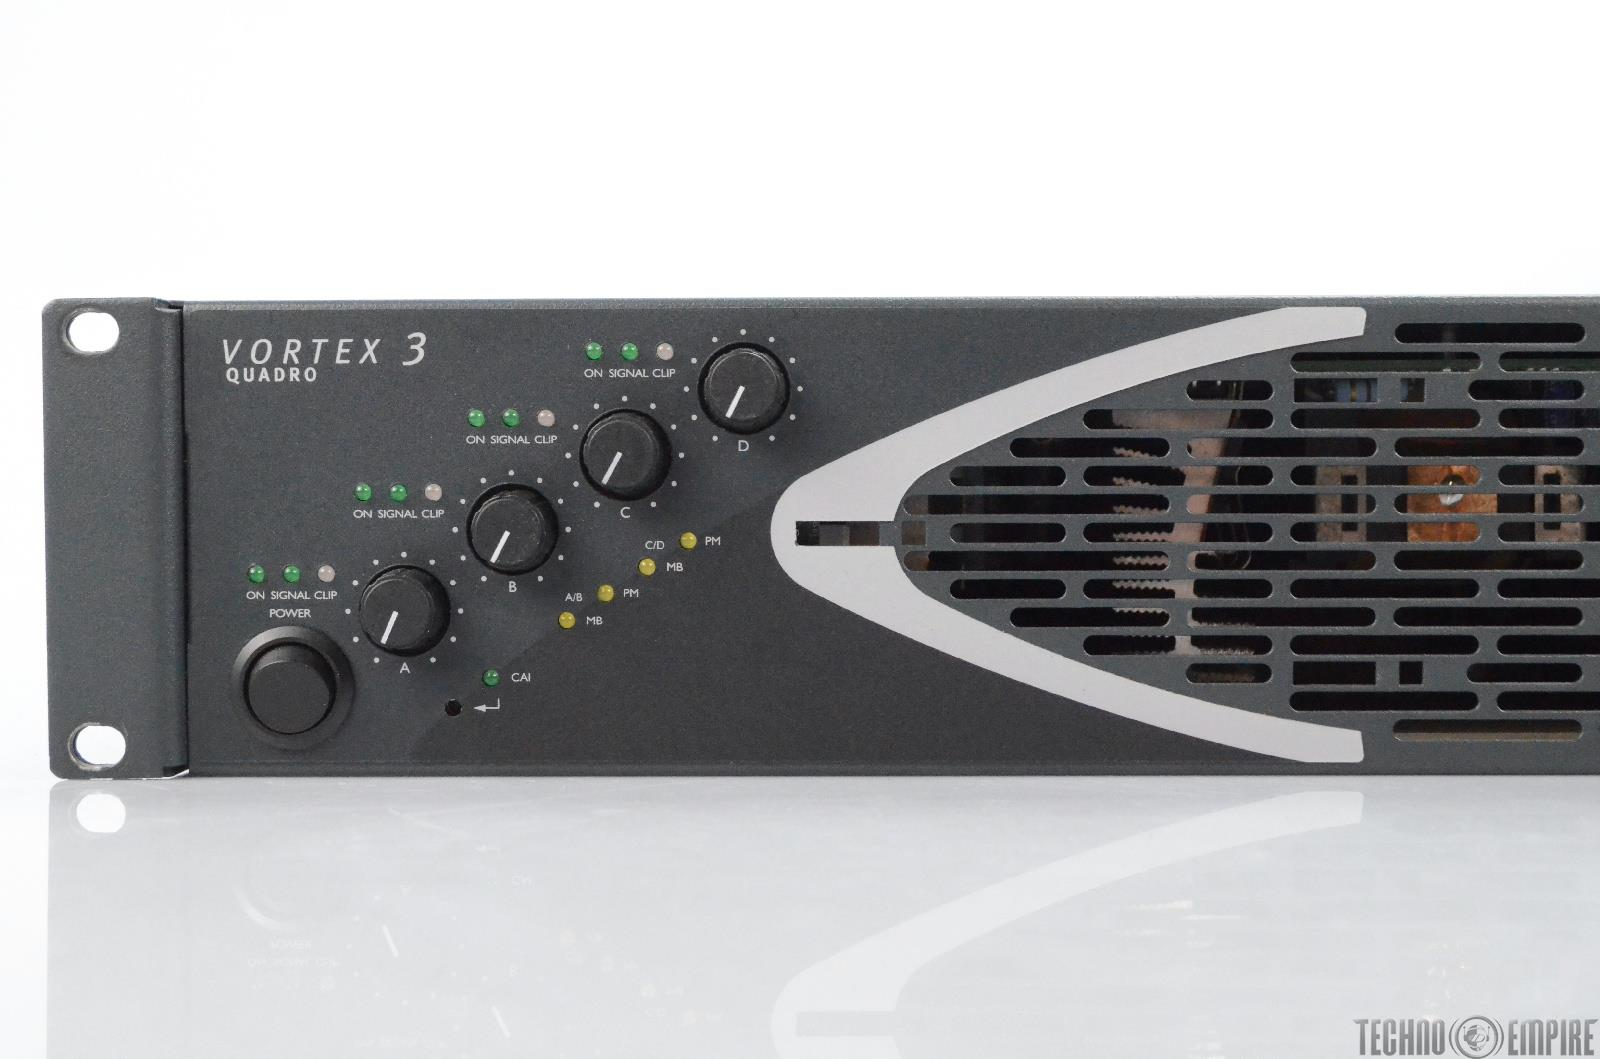 Camco Vortex 3 Quadro 4 Channel Power Amplifier Amp Made In Germany 30720 Ebay